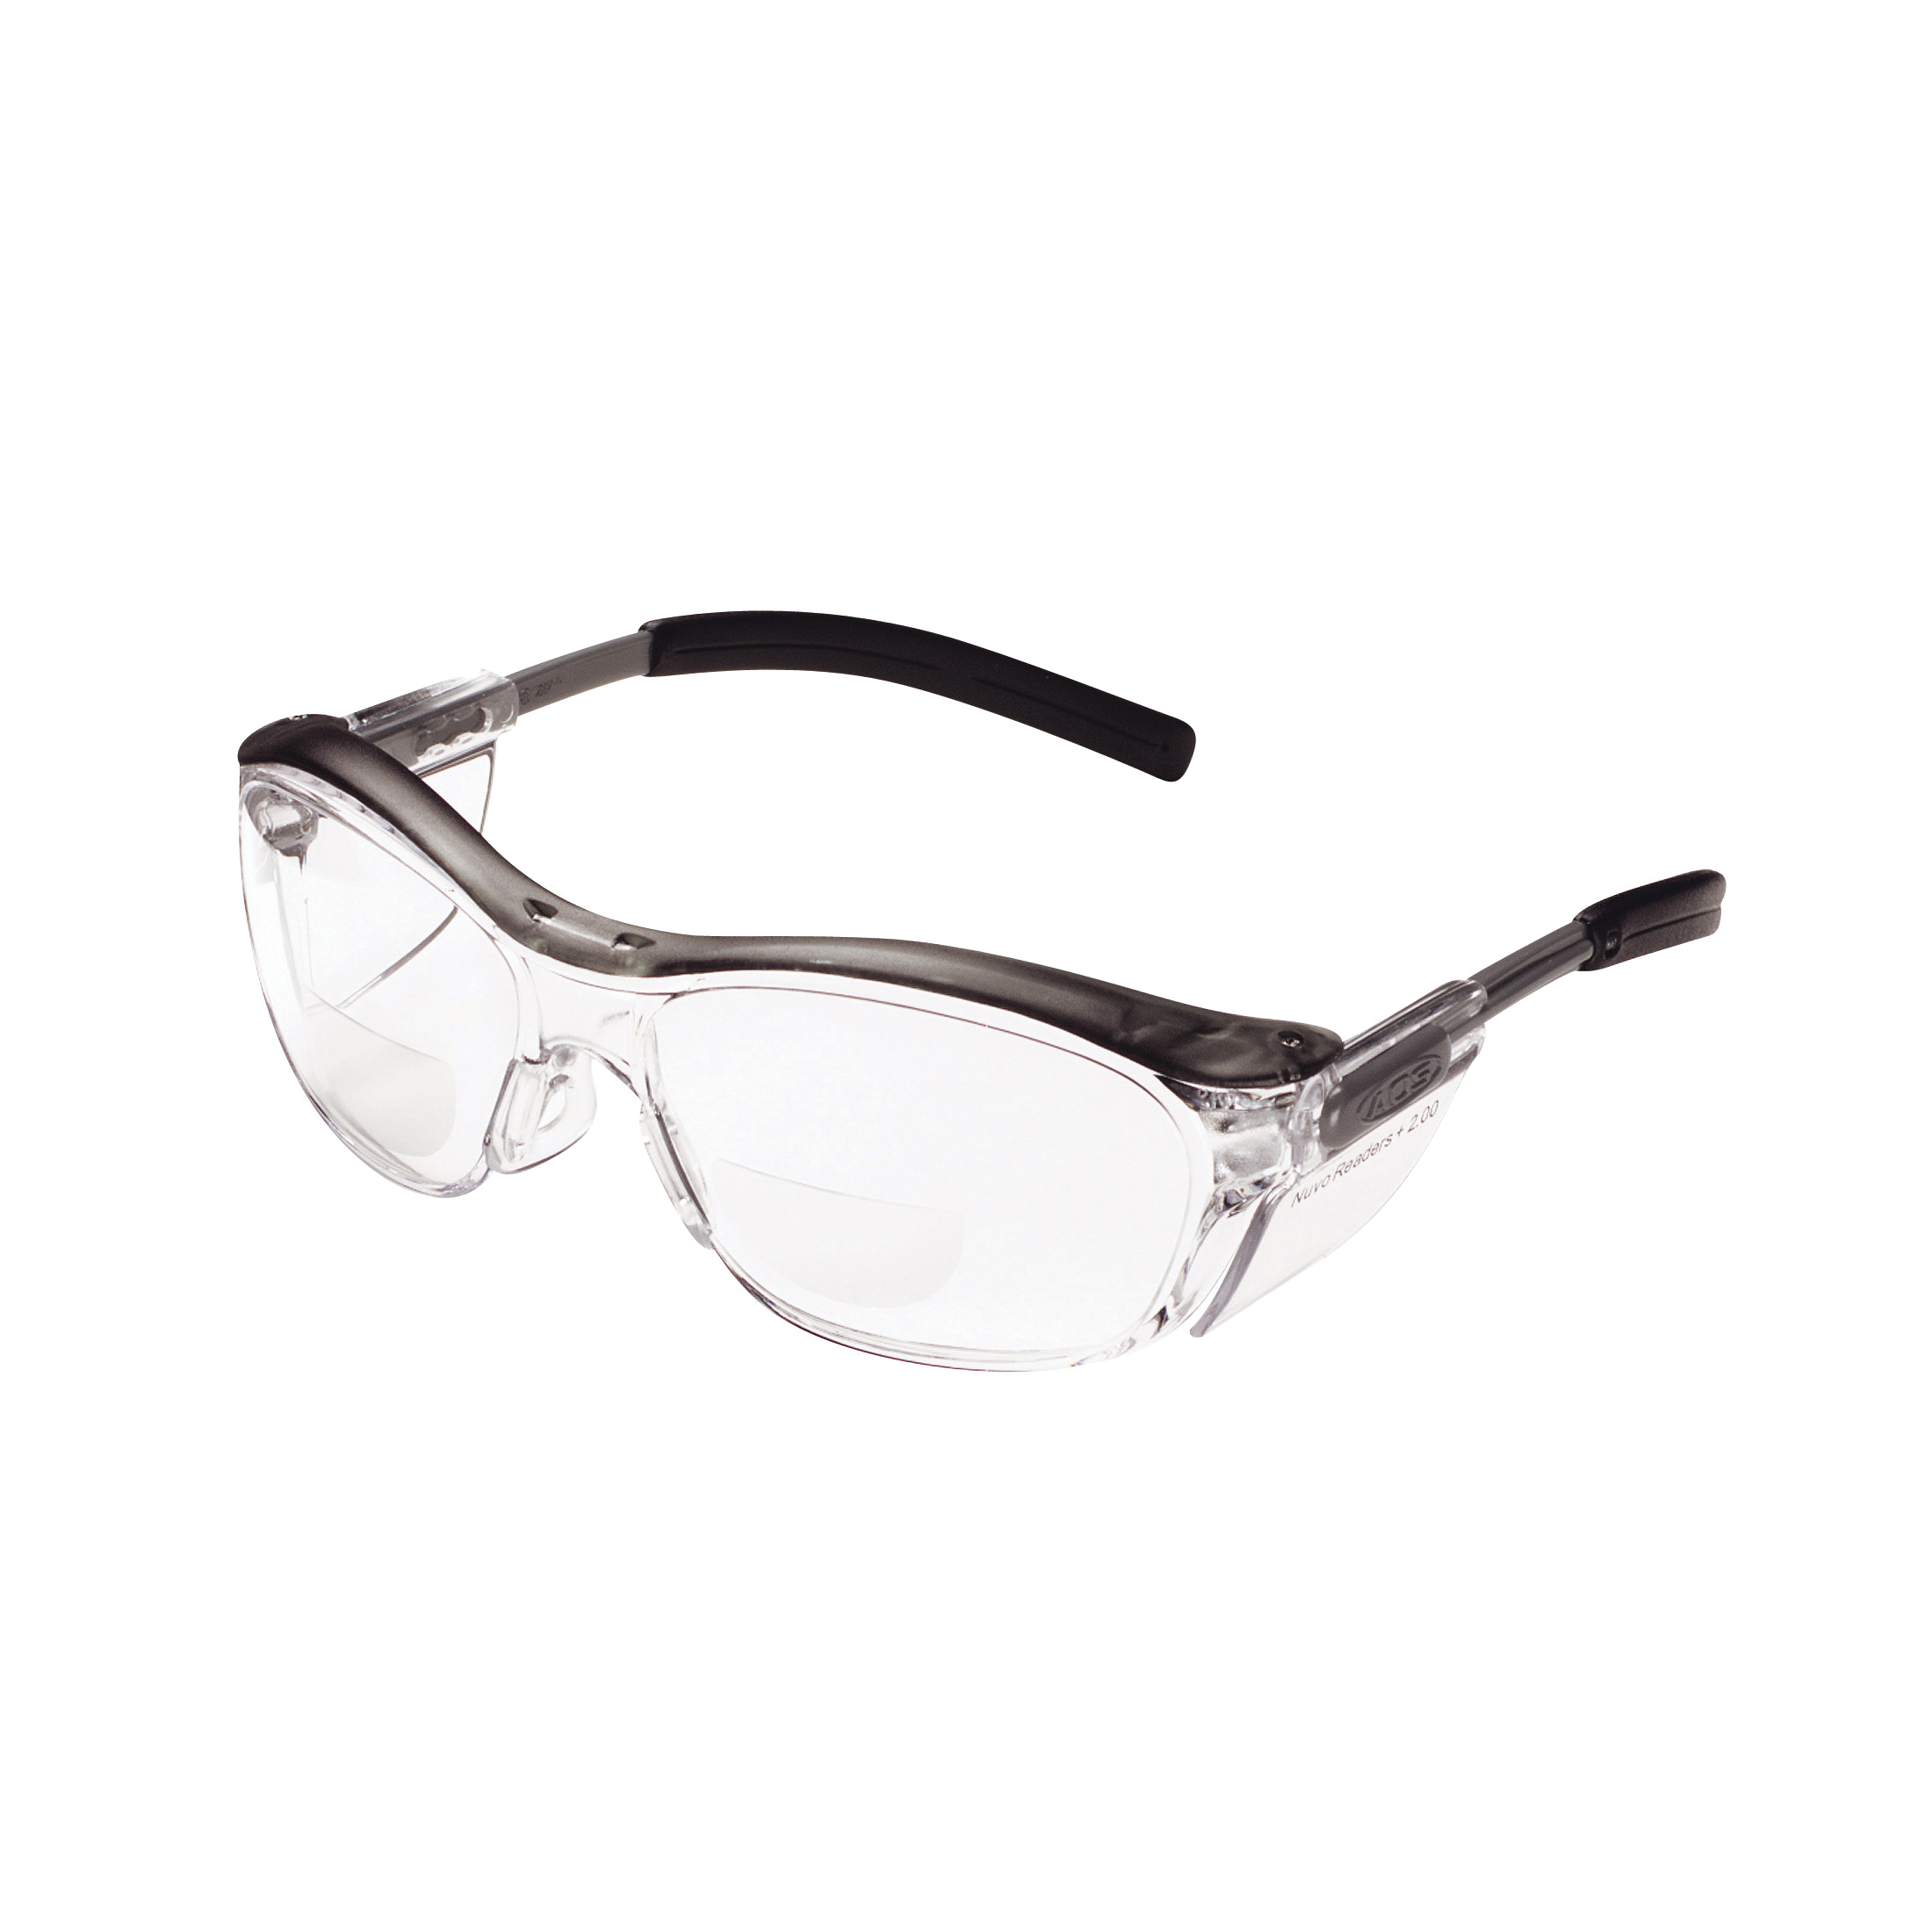 3M™ Nuvo™ 078371-62063 Bi-Focal Lens Lightweight Reader Protective Eyewear, 2 Diopter, Clear Lens, Gray, Plastic Frame, Polycarbonate Lens, 99.9 % UV Protection, ANSI Z87.1-2015, CSA Z94.3-2007